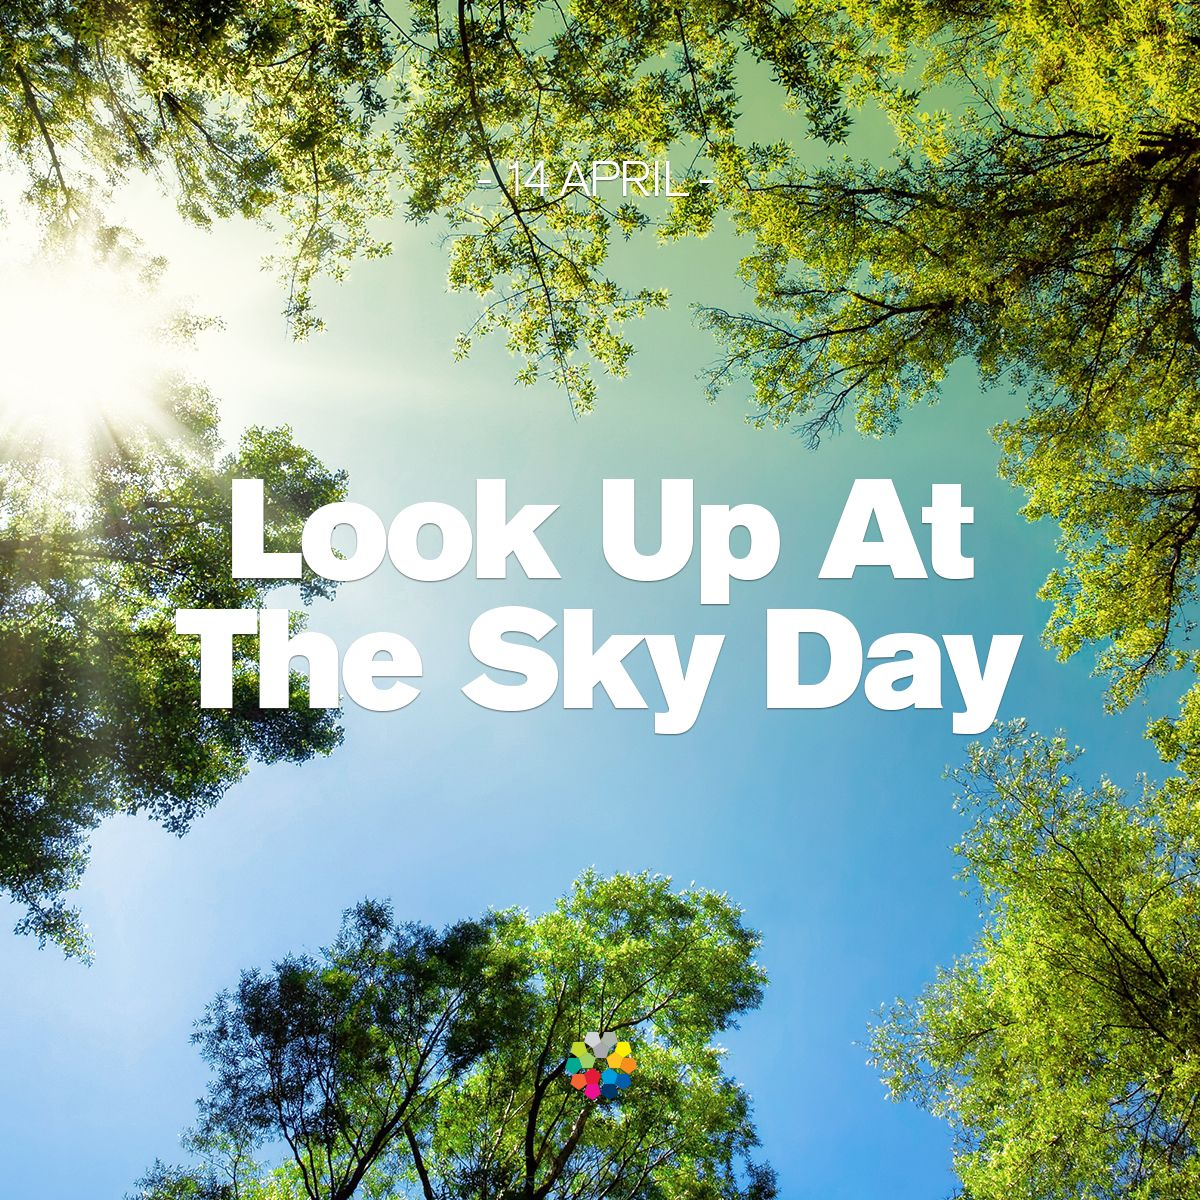 Different Is Awesome Holiday Package: Today Is Look Up At The Sky Day, A Perfect Opportunity To